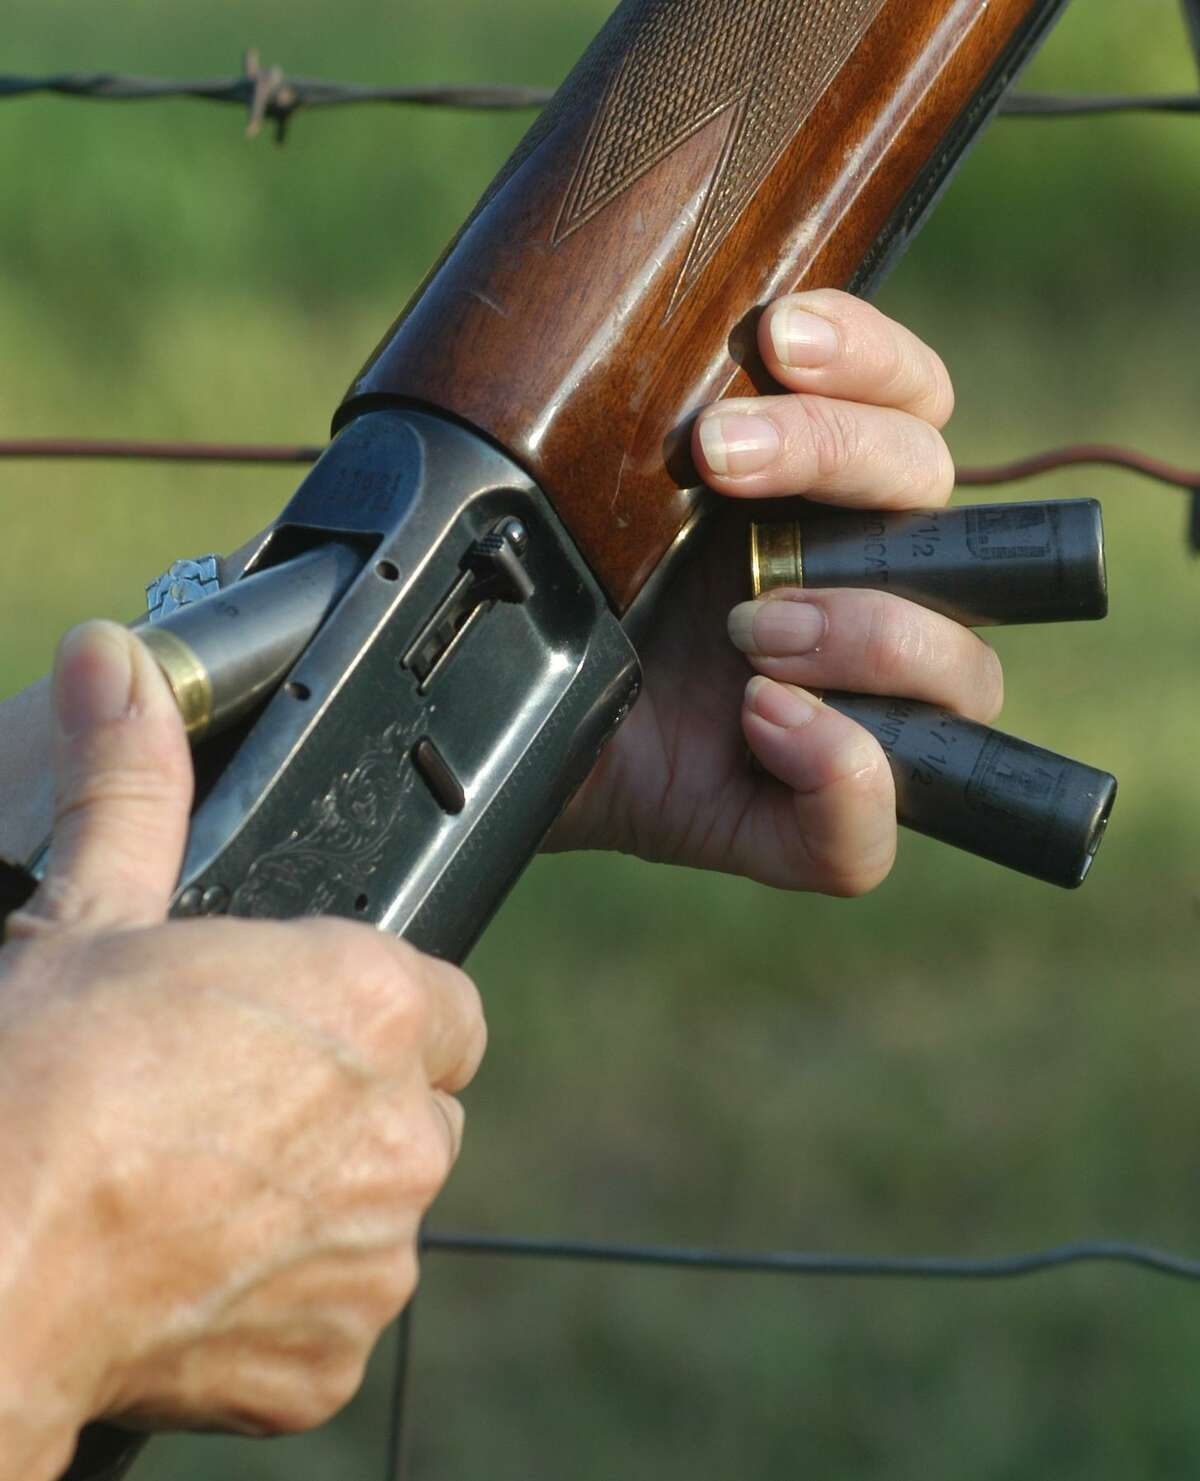 For migratory bird hunting, all shotguns must plugged to a three-shot capacity.